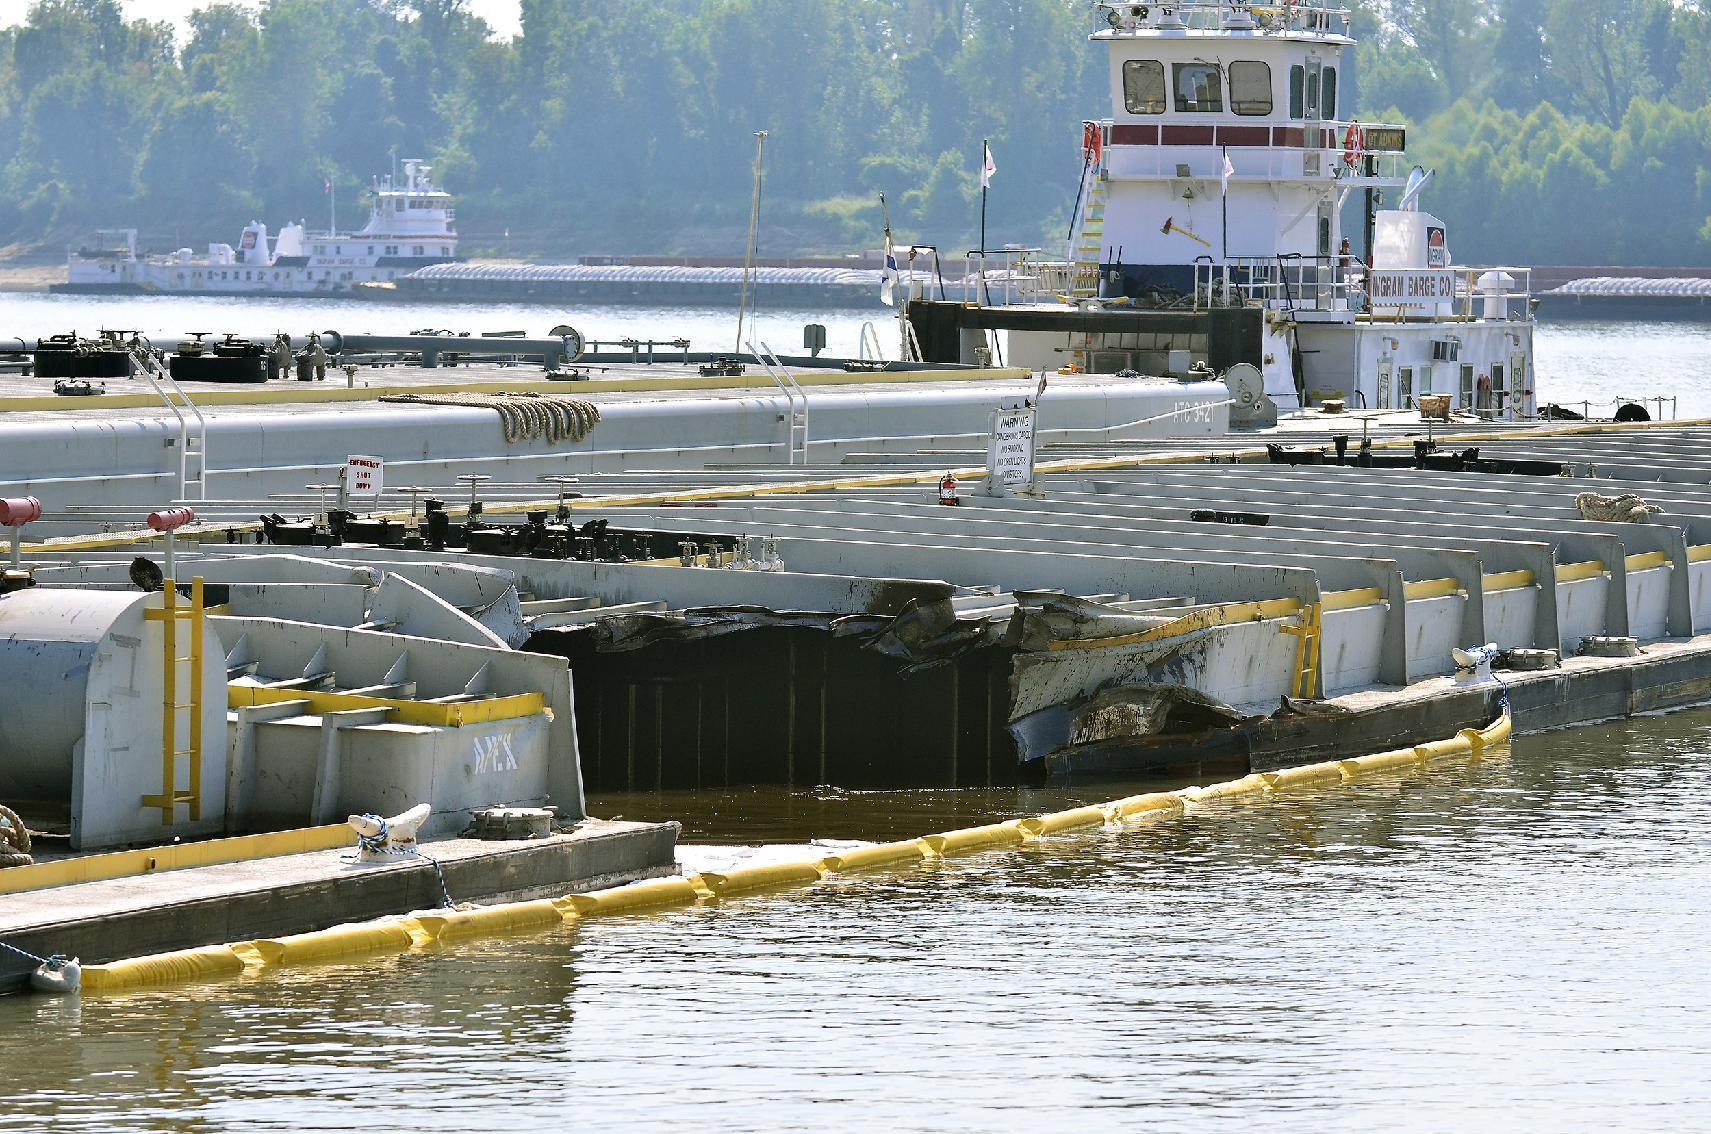 Clean up crews to go into Mississippi River after oil spill